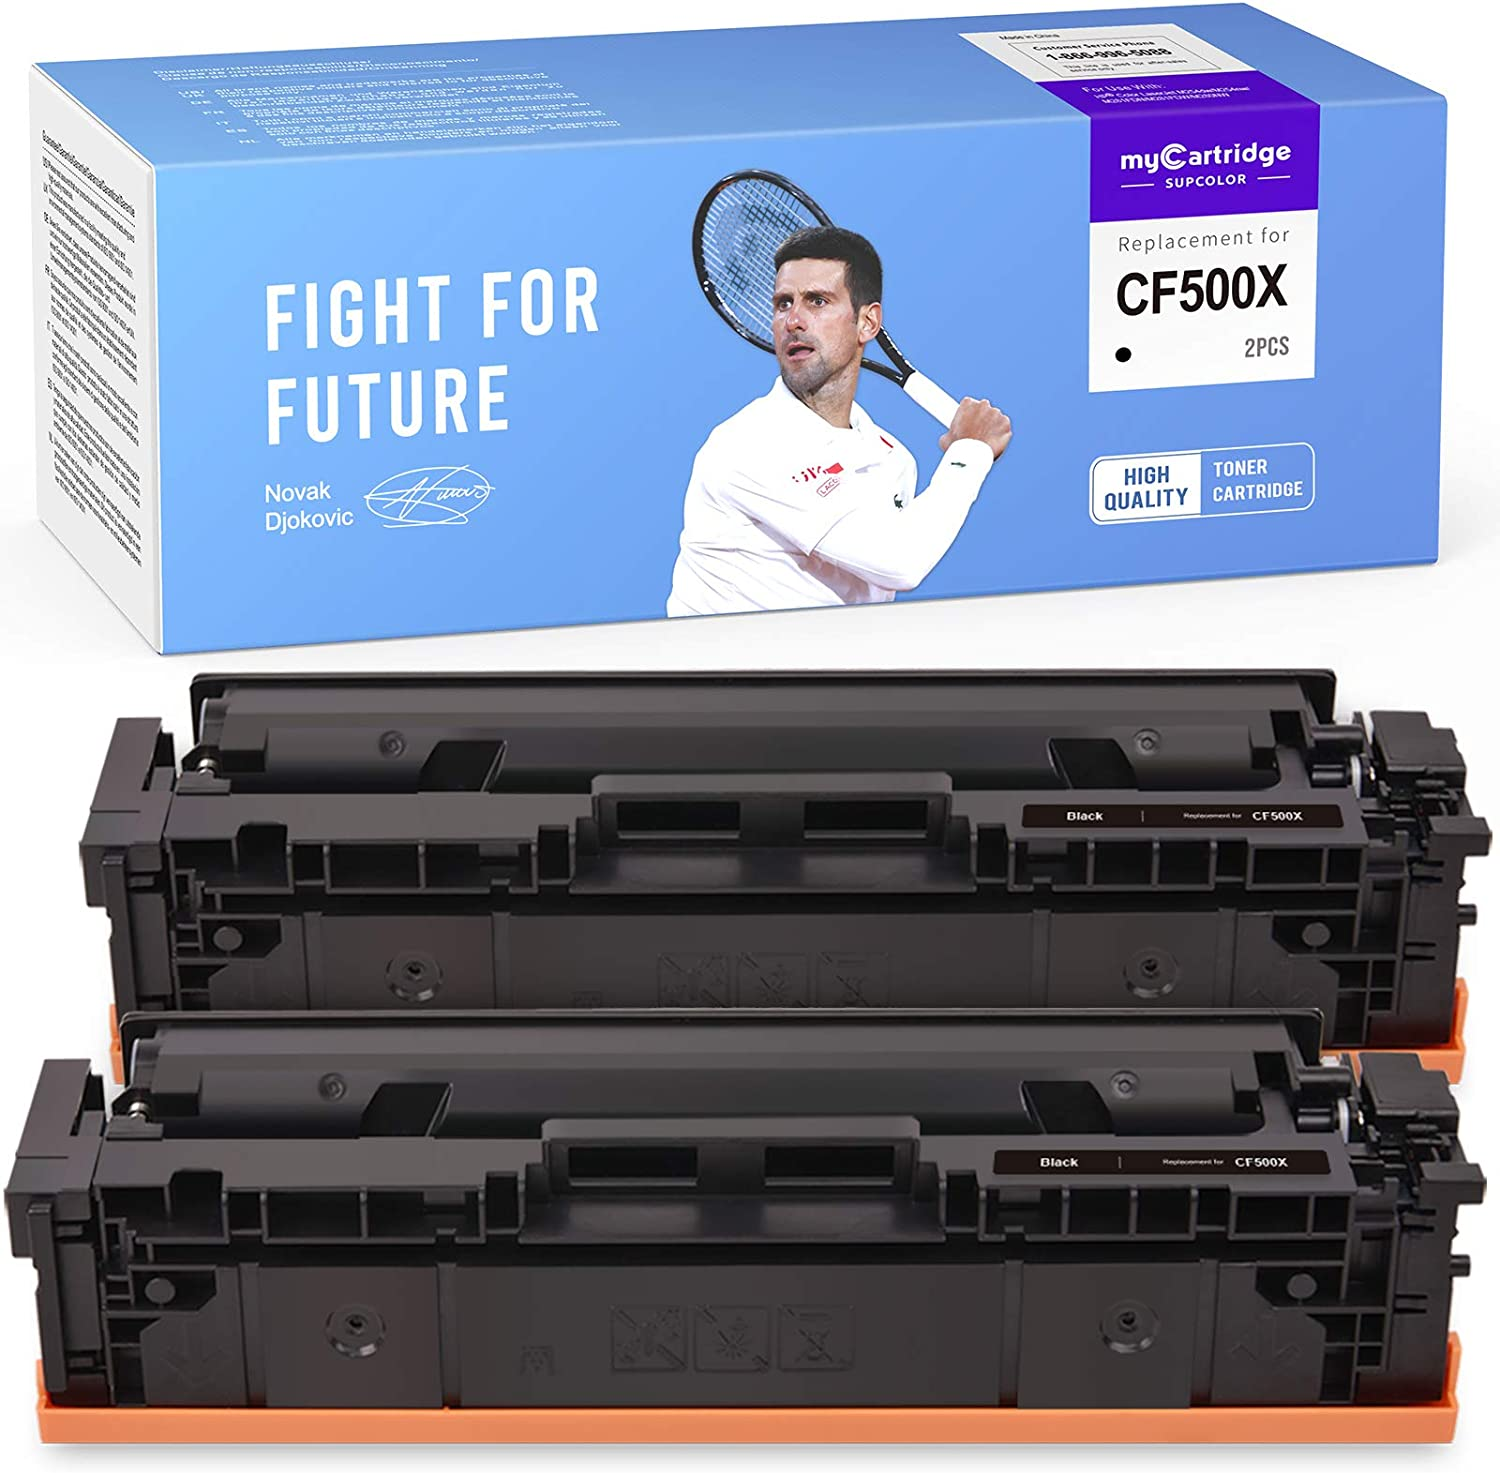 myCartridge SUPCOLOR Compatible Toner Cartridge Replacement for HP 202X 202A CF500X CF500A High Yield for Laserjet Pro MFP M281fdw M281cdw M281dw M281 M254dw M280nw (2 Black)